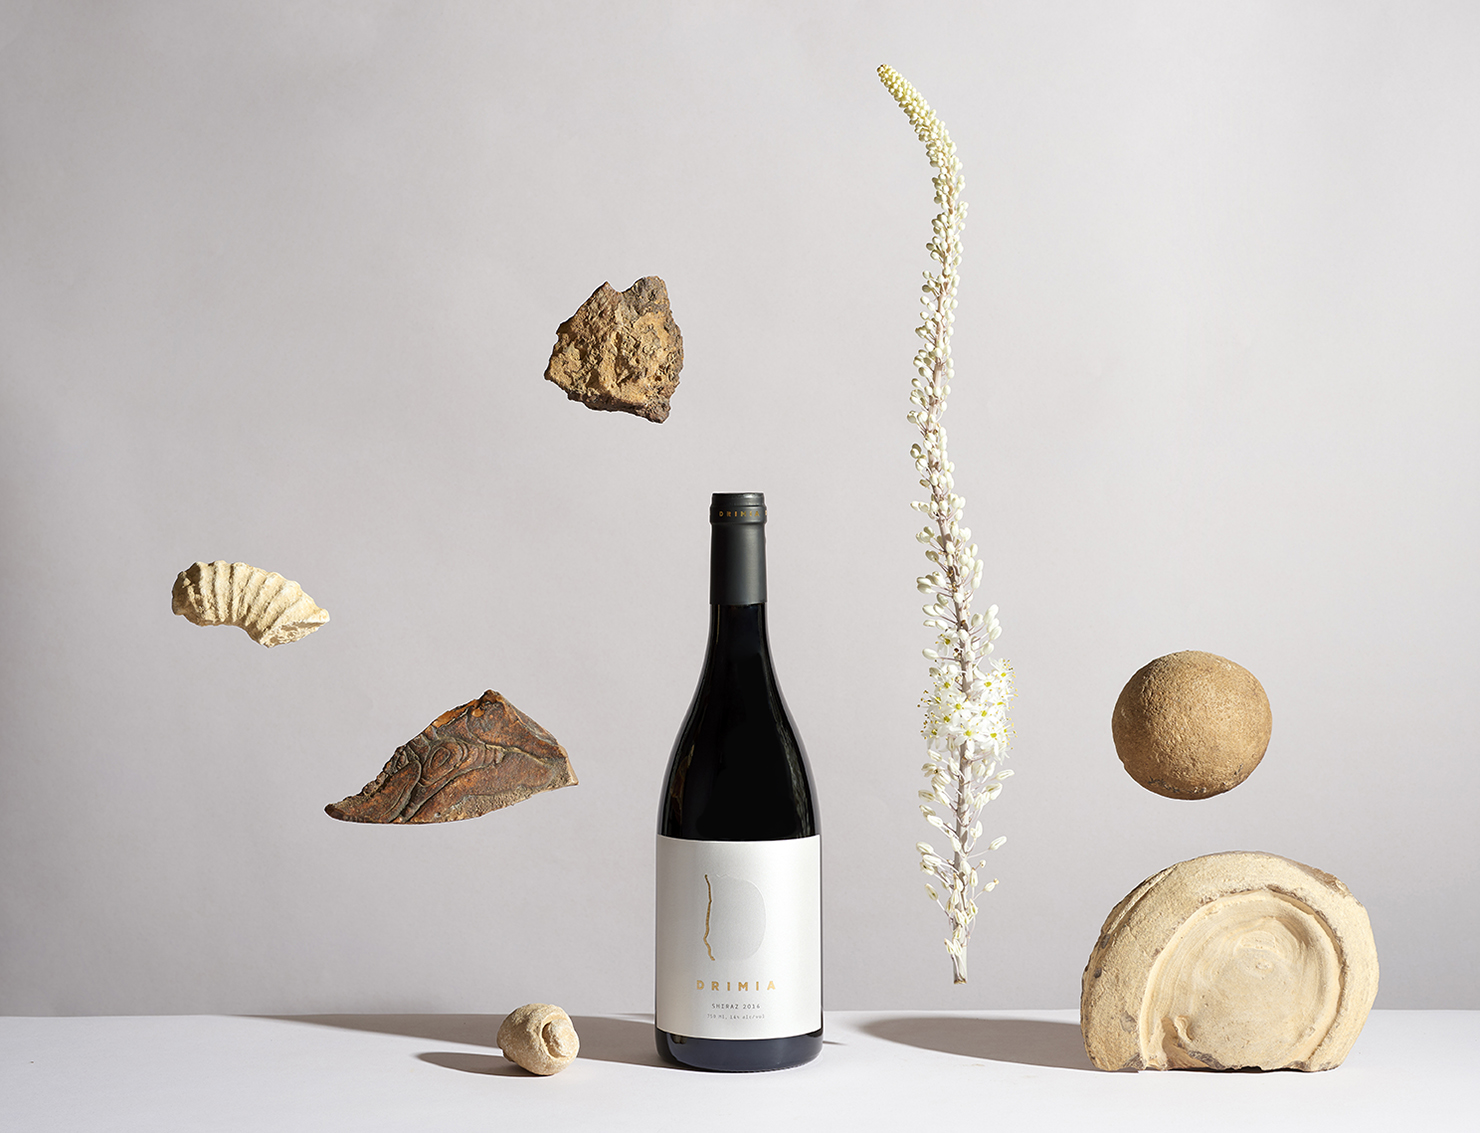 Dov Kroll and Dekel Maimon's Create New Visual Language for Drimia Winery